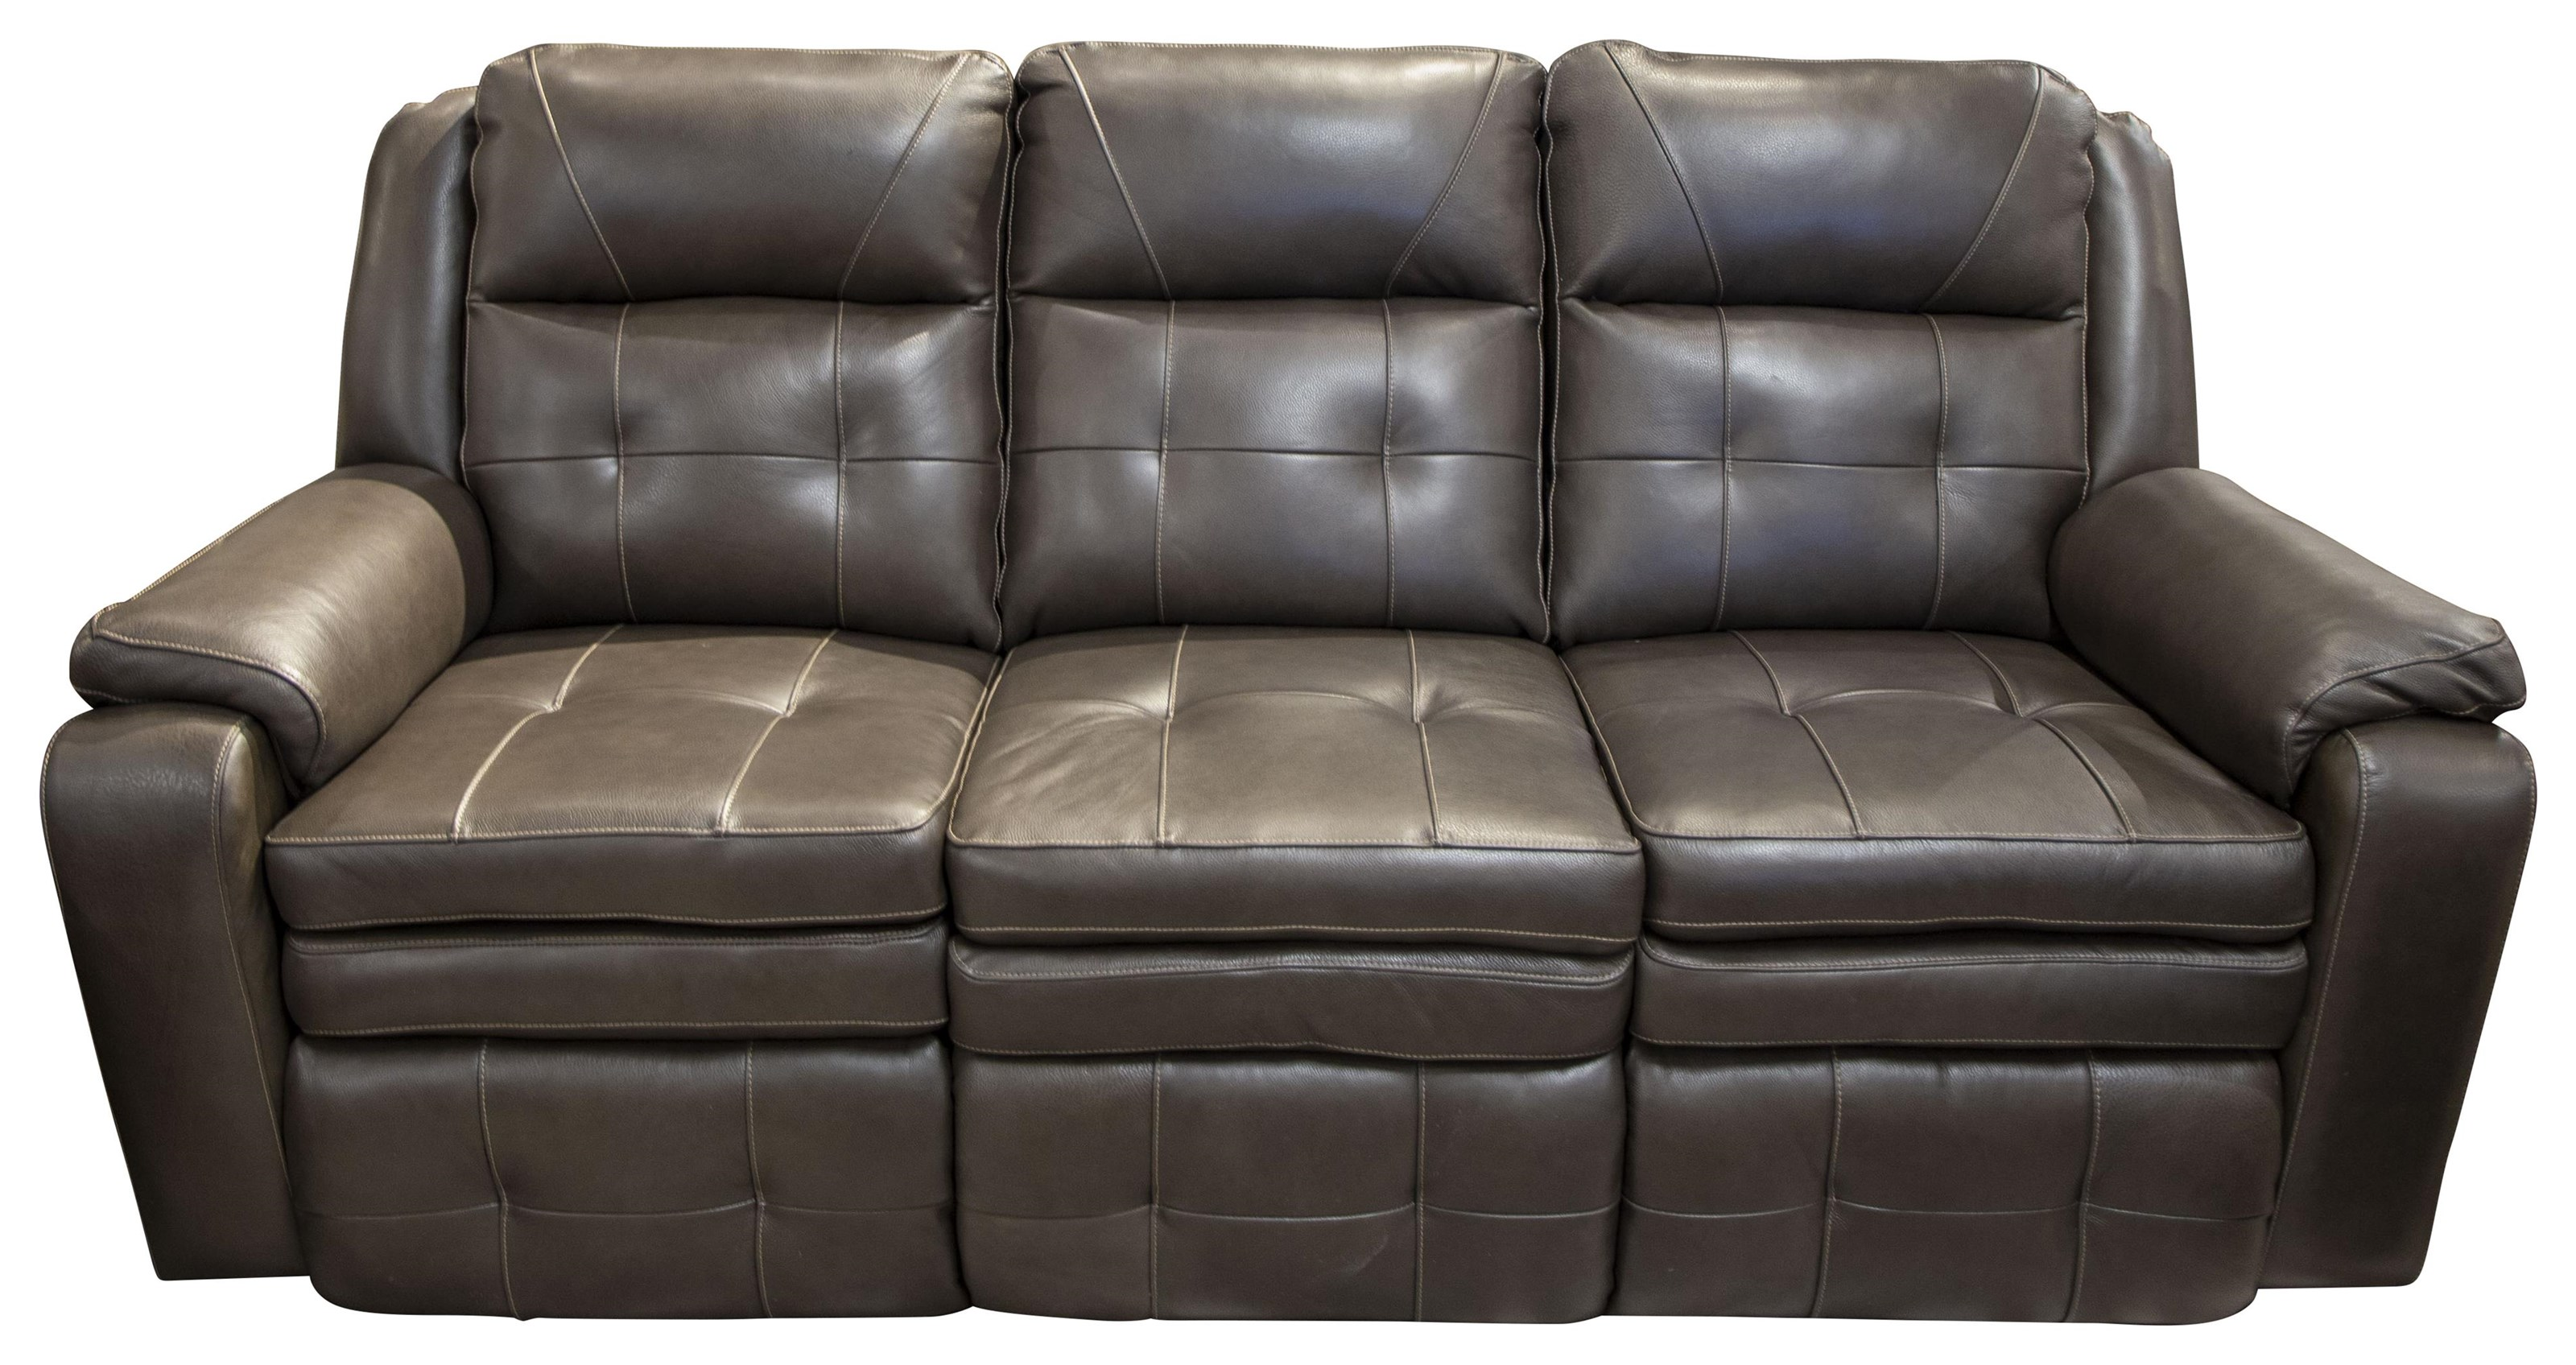 Castiel Castiel Leather Power Sofa by Southern Motion at Morris Home